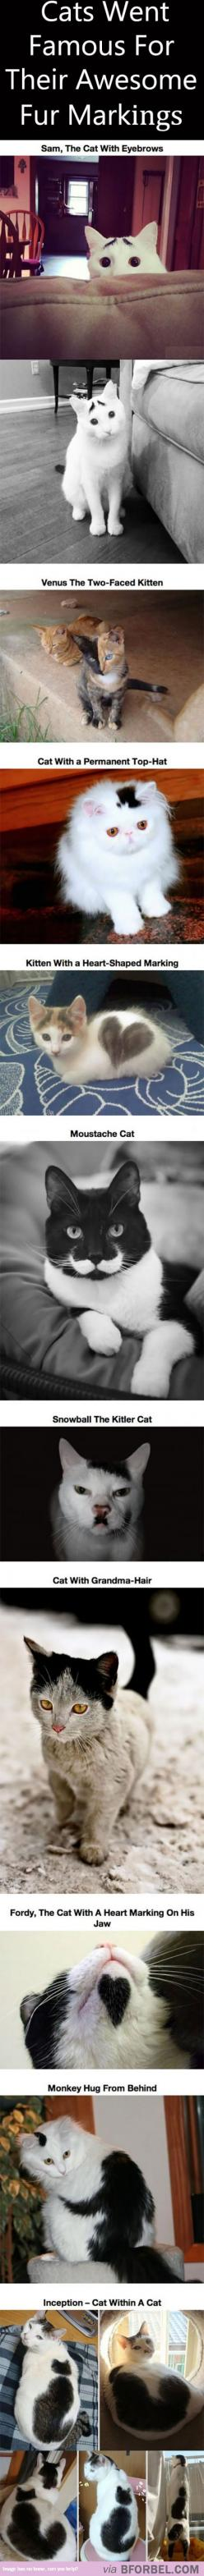 10 Cats That Became Famous For Their Awesome Fur Markings…: 10 Cats, Fur Markings, Crazy Cat, Kitty, Animal, Cat Lady, Awesome Fur